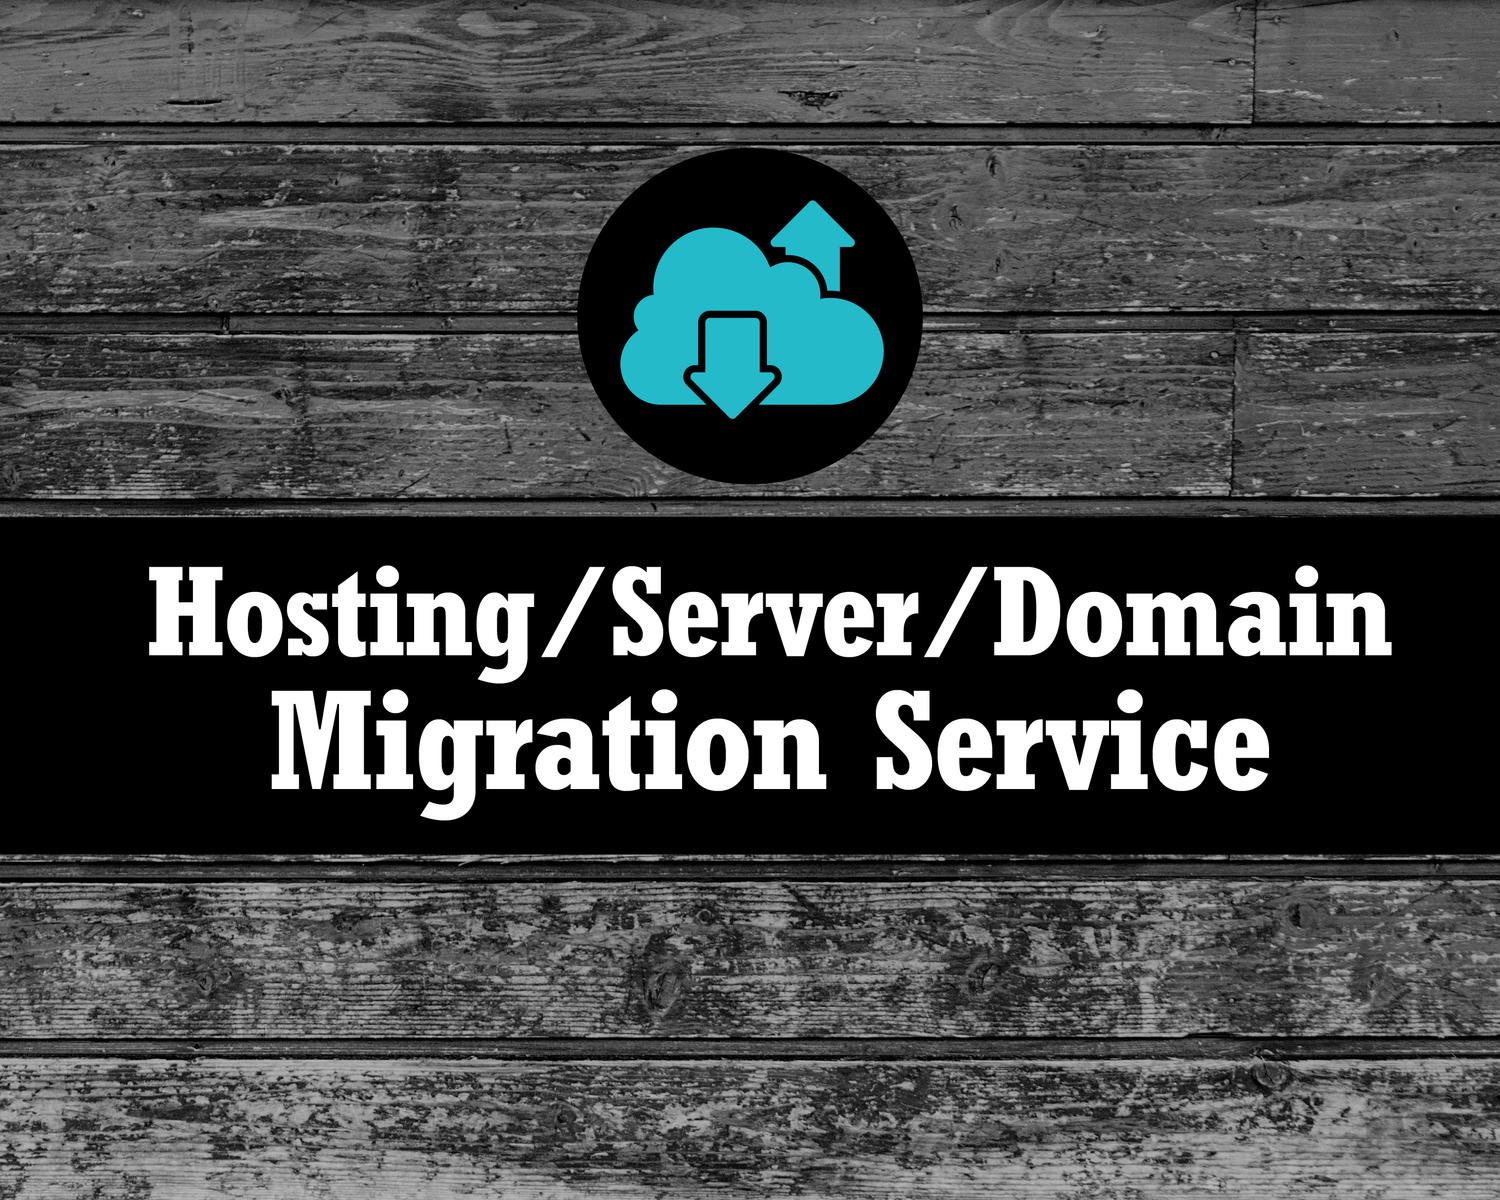 Drupal Website Migration by hasanet - 98913